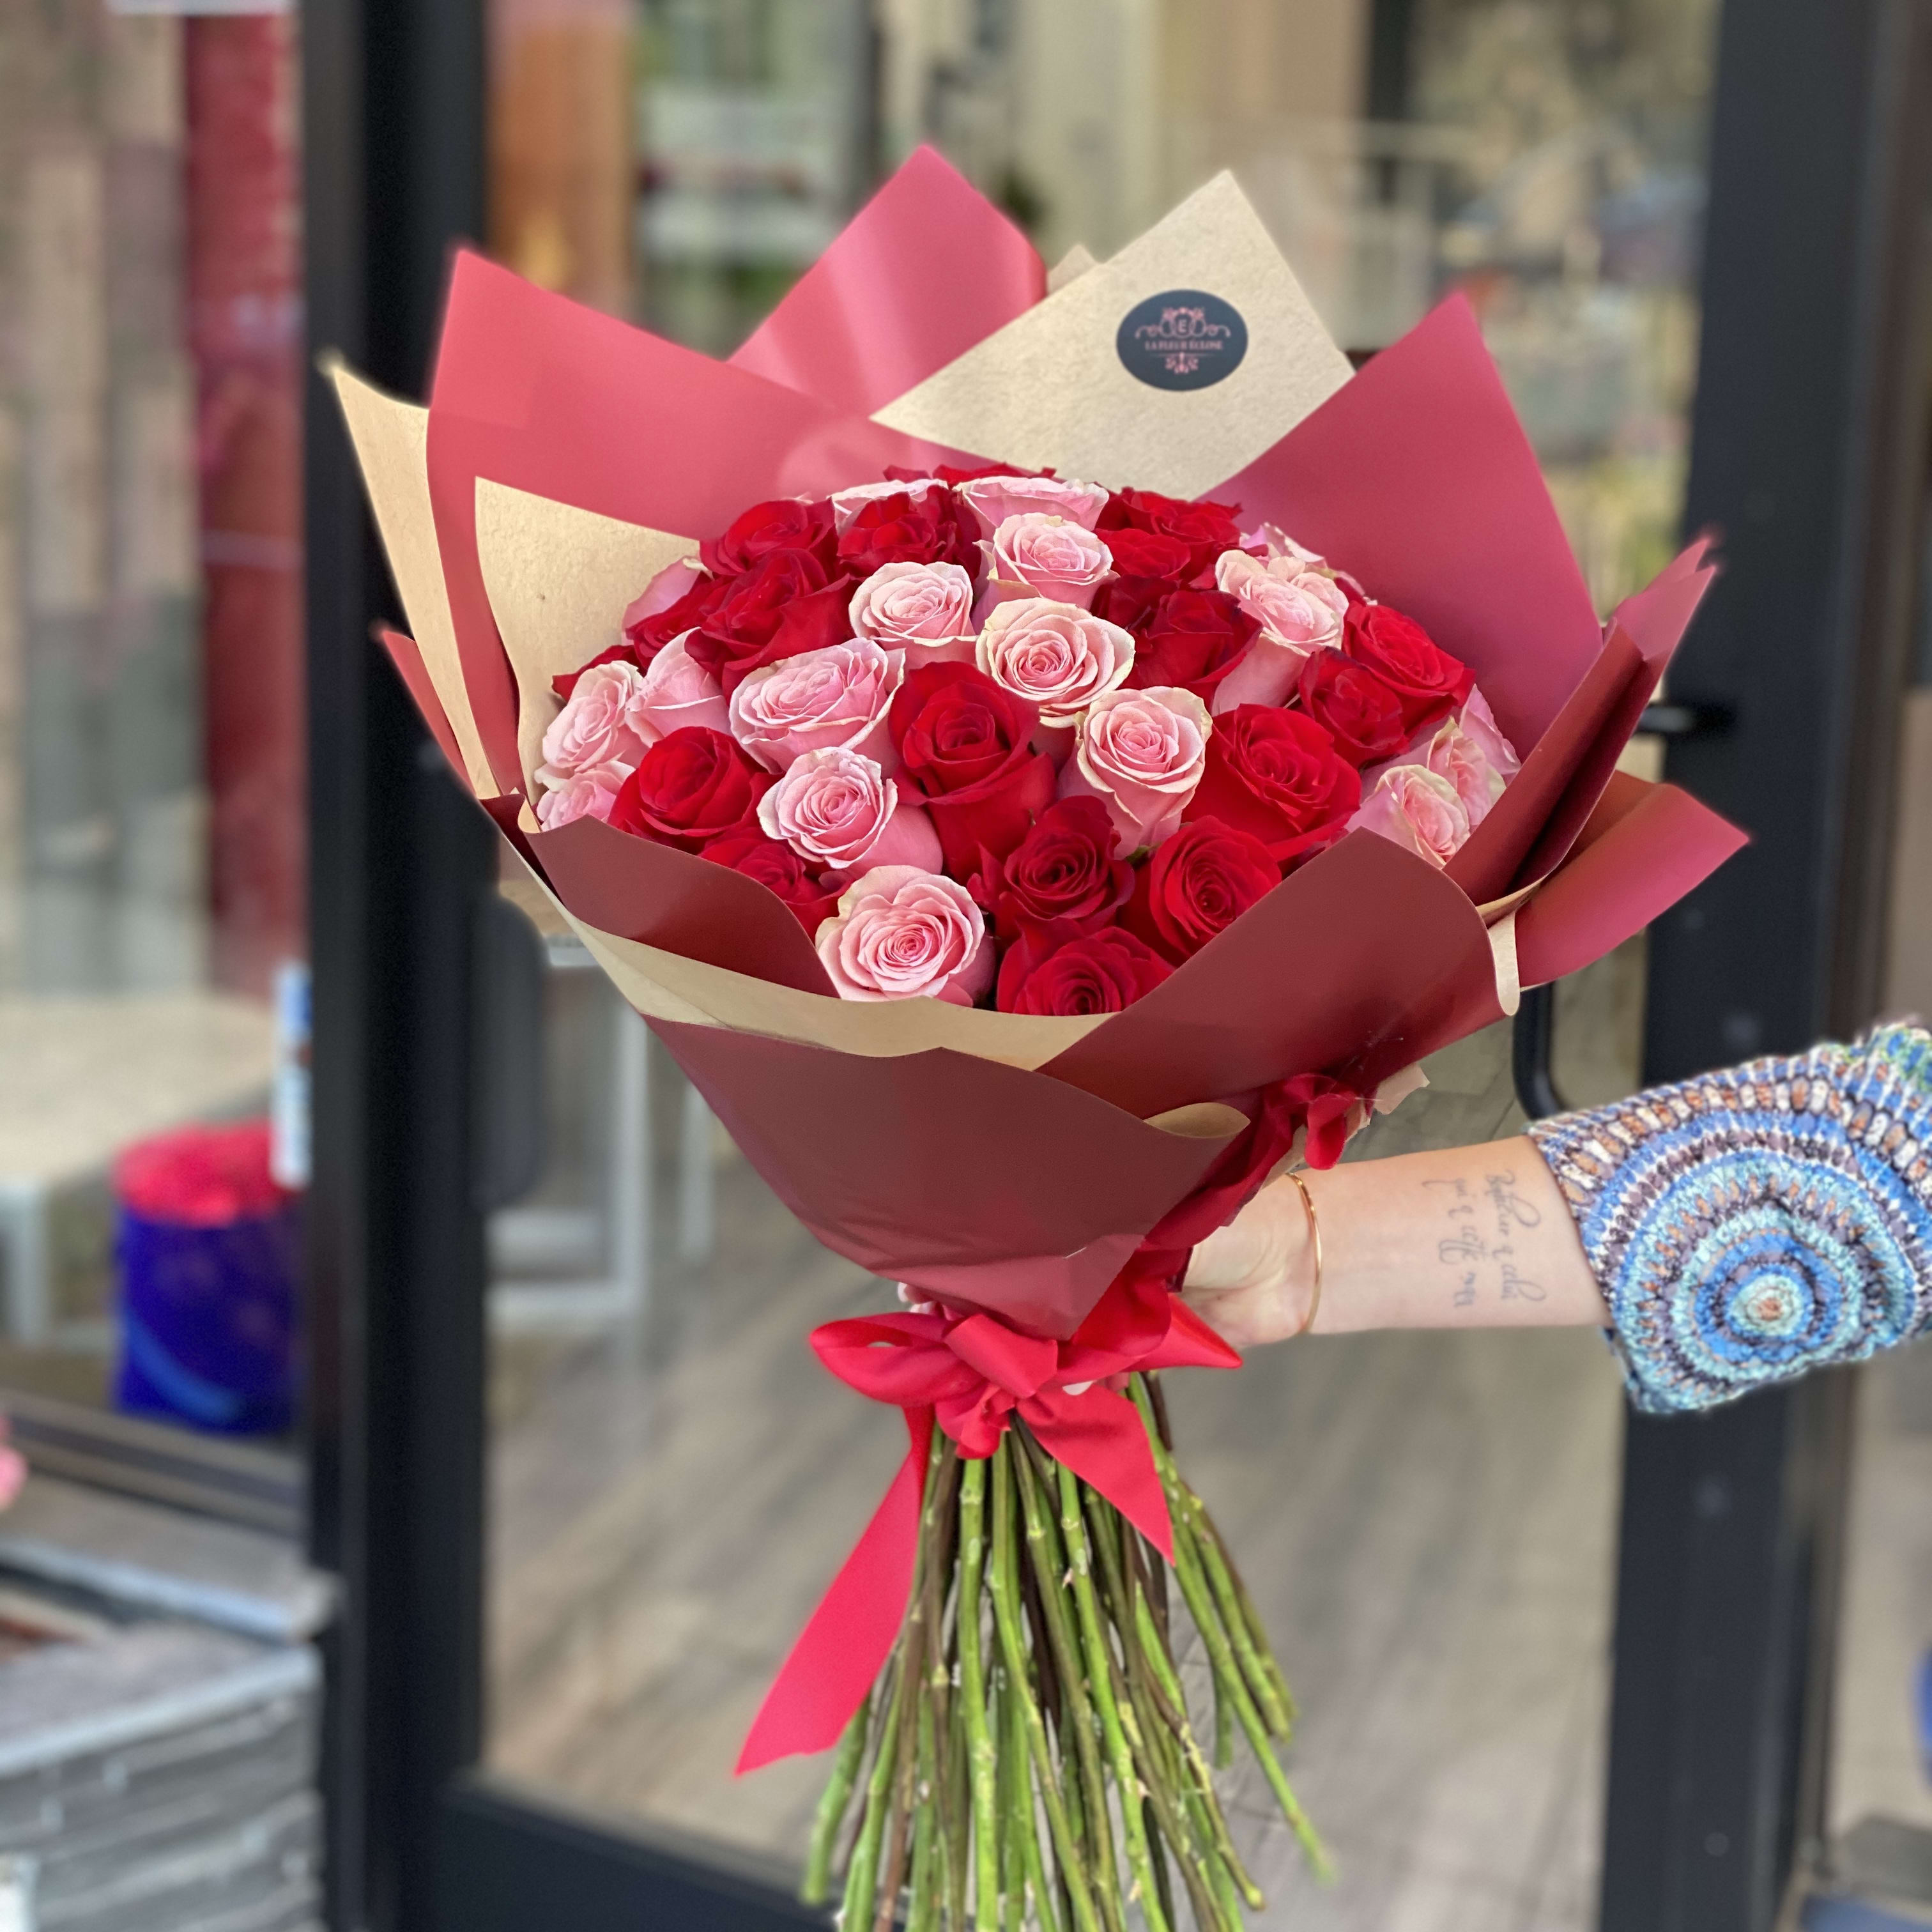 Hand Bouquet With 50 Pink And Red Roses By La Fleur Eclose